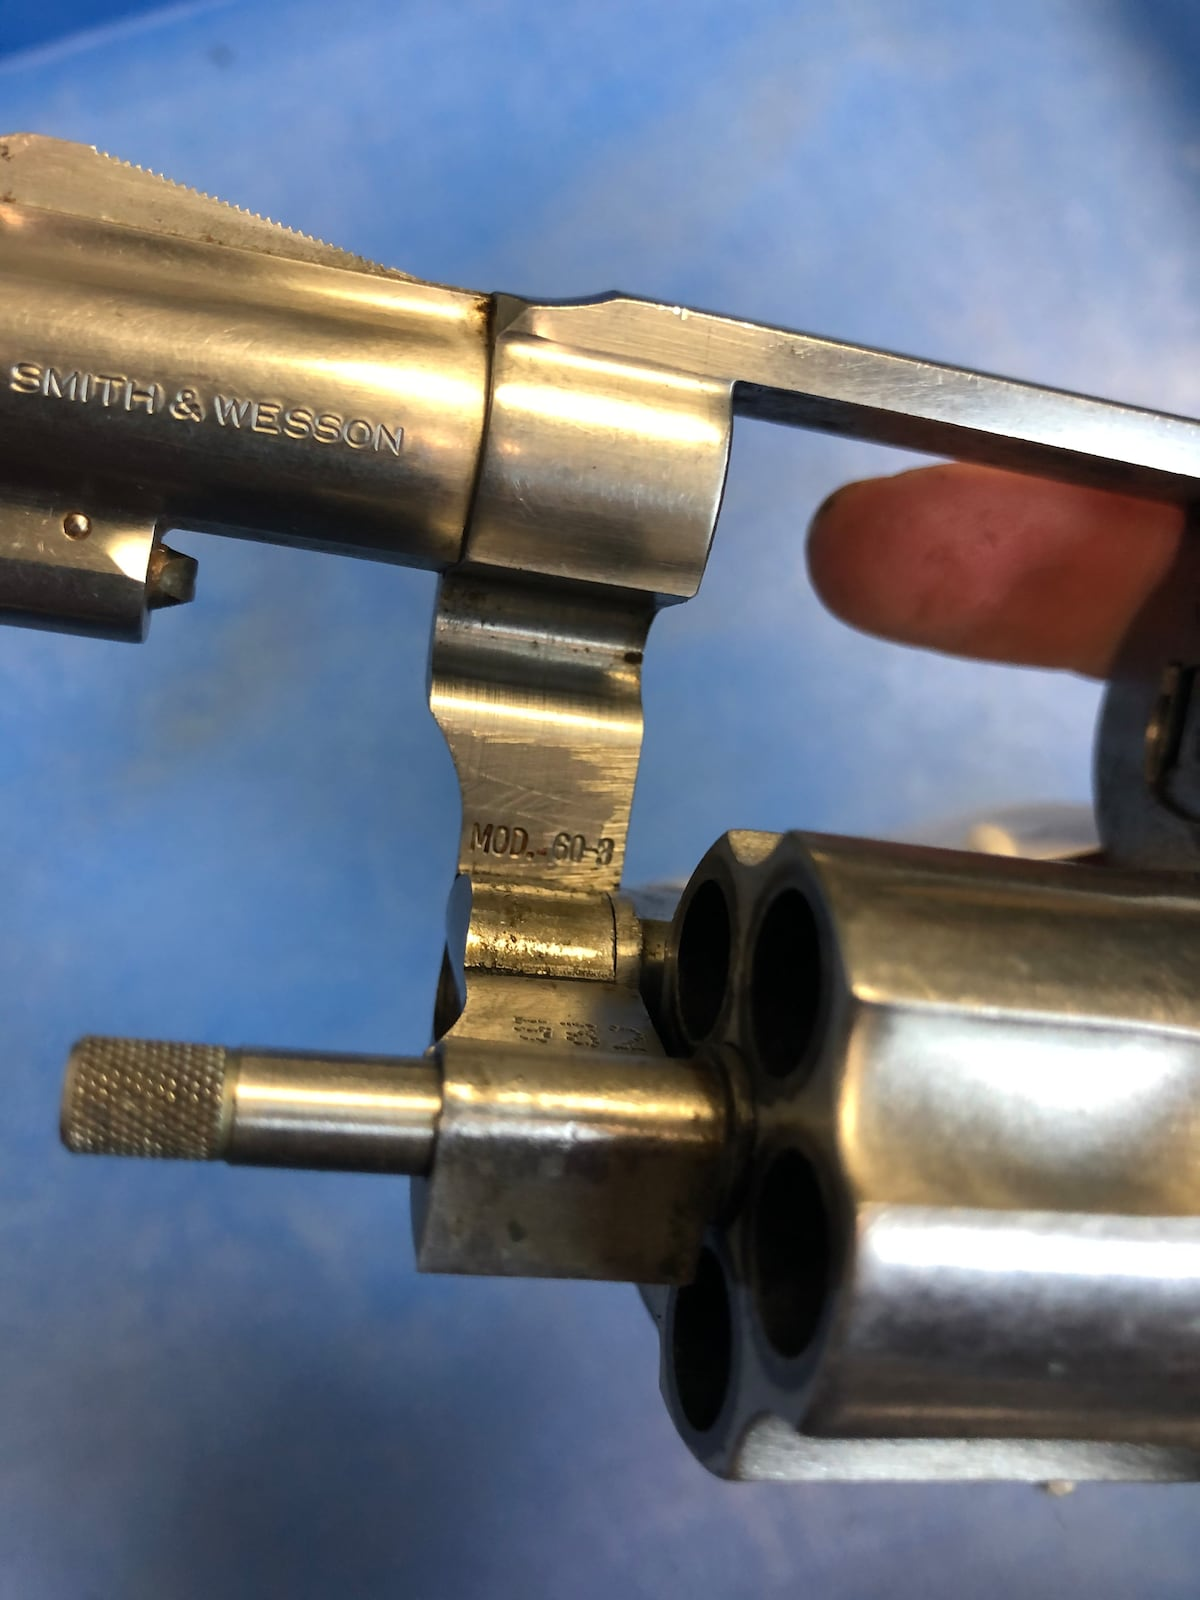 SMITH AND WESSON model 60-3 chief special